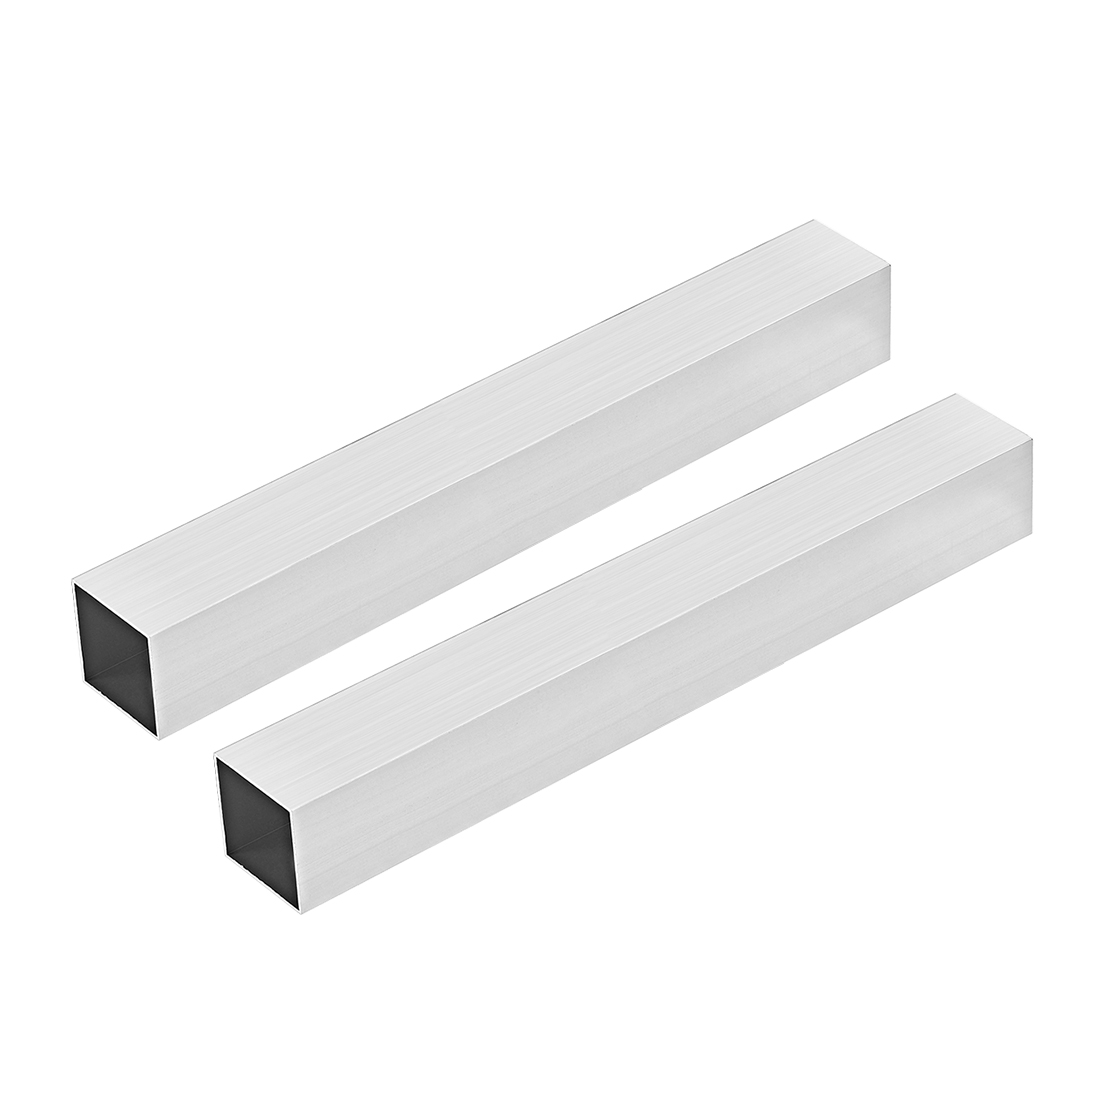 6063 Aluminum Square Tube 38mmx38mmx1mm Wall Thickness 300mm Length Tubing 2 Pcs